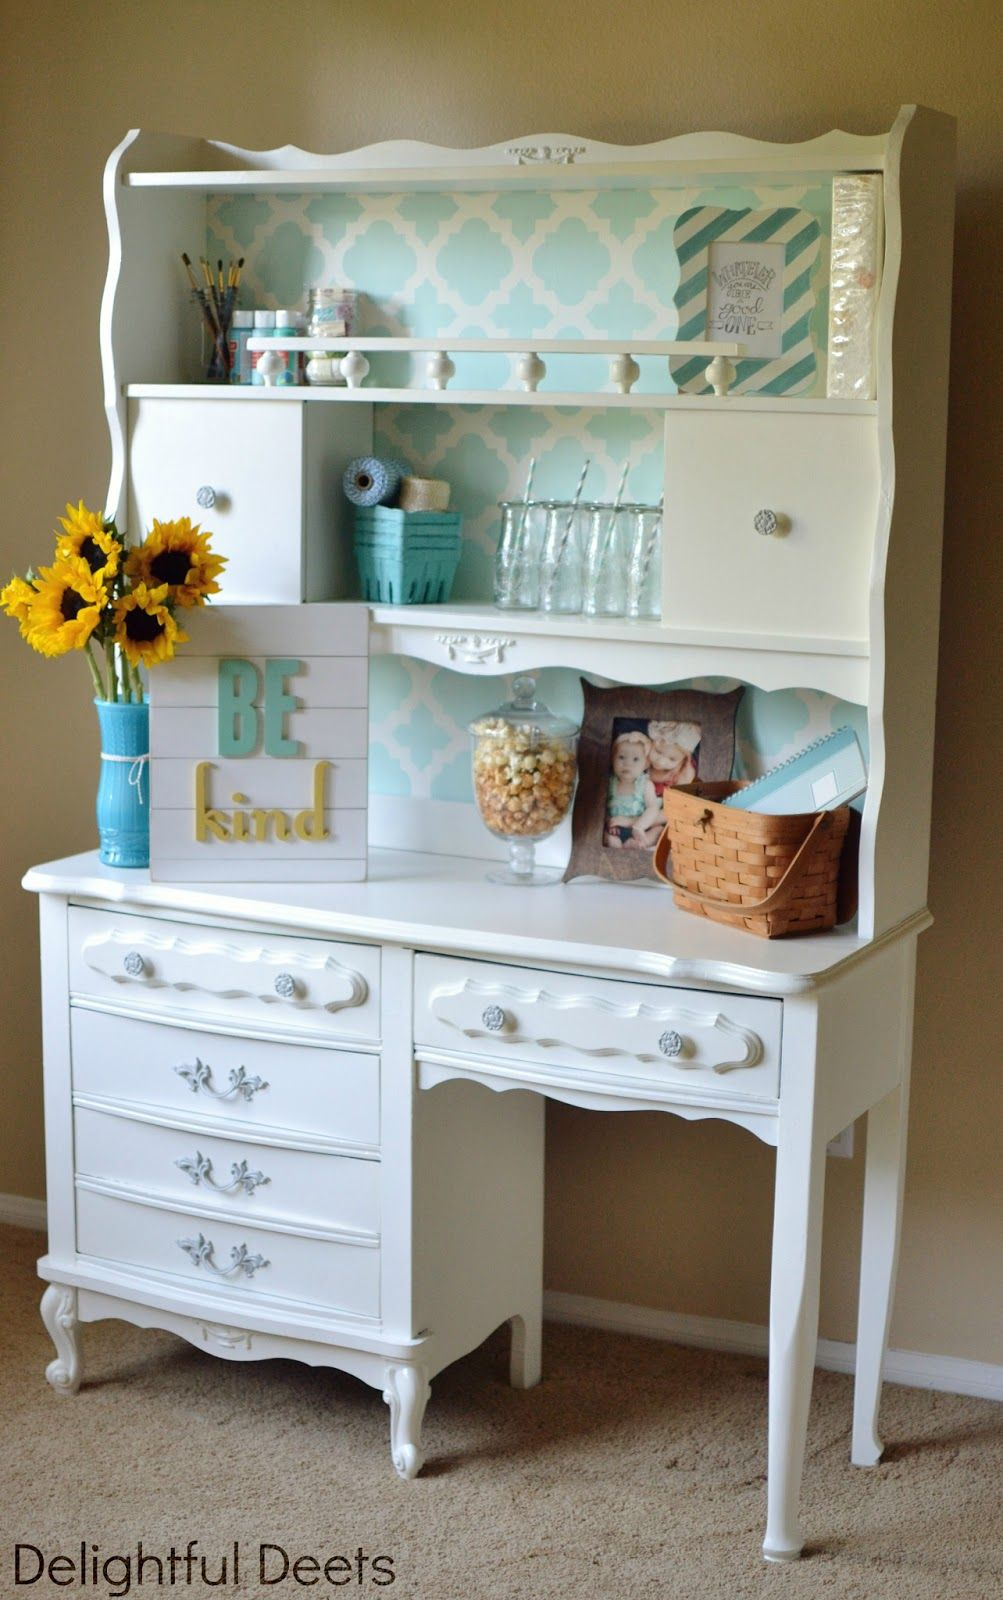 Delightful Deets: Vintage Desk & Hutch Makeover {Giveaway from Cutting Edge  Stencils & Evie Ivy Typography Signs} - Aniyah Has This Exact Desk And Hutch. I Even Painted The Desk